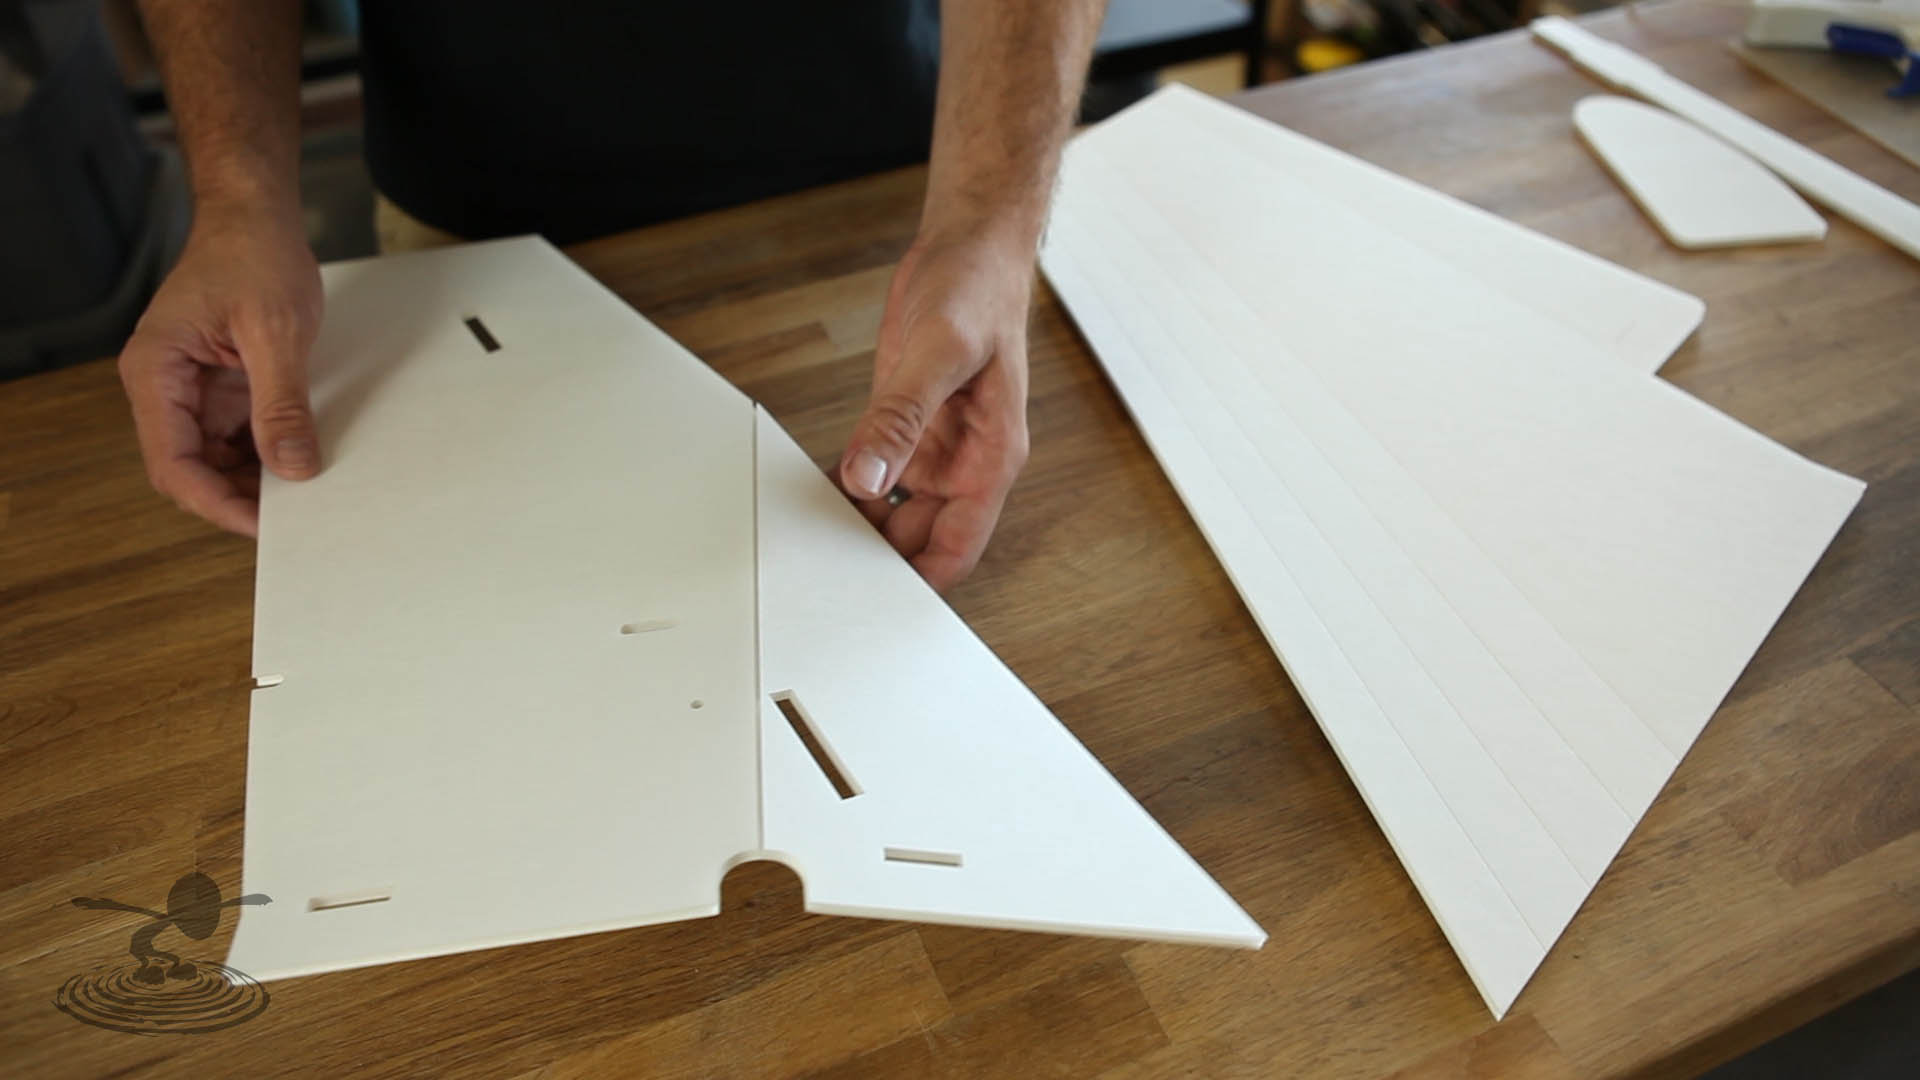 instructions for how to build a plane with popstickle sticks